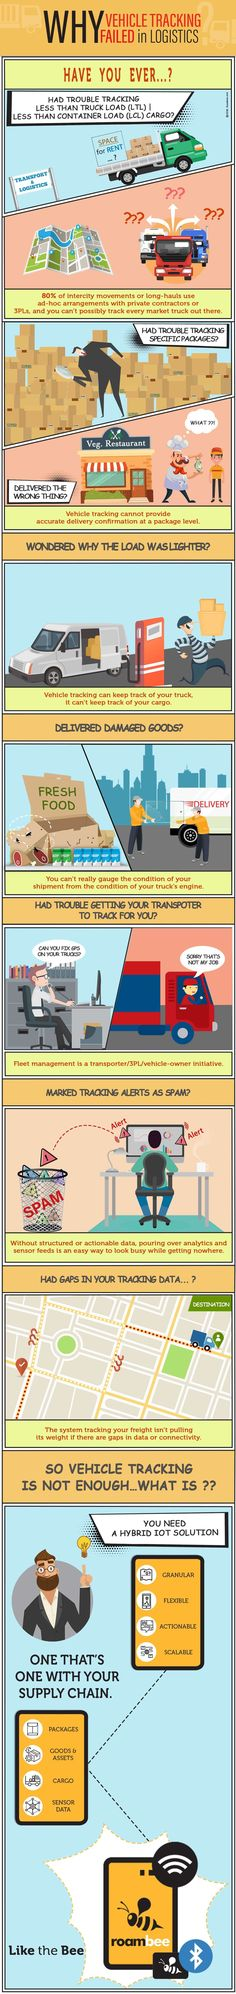 Reasons Why Vehicle Tracking Failed #infographic http://bit.ly/2mvUxoF